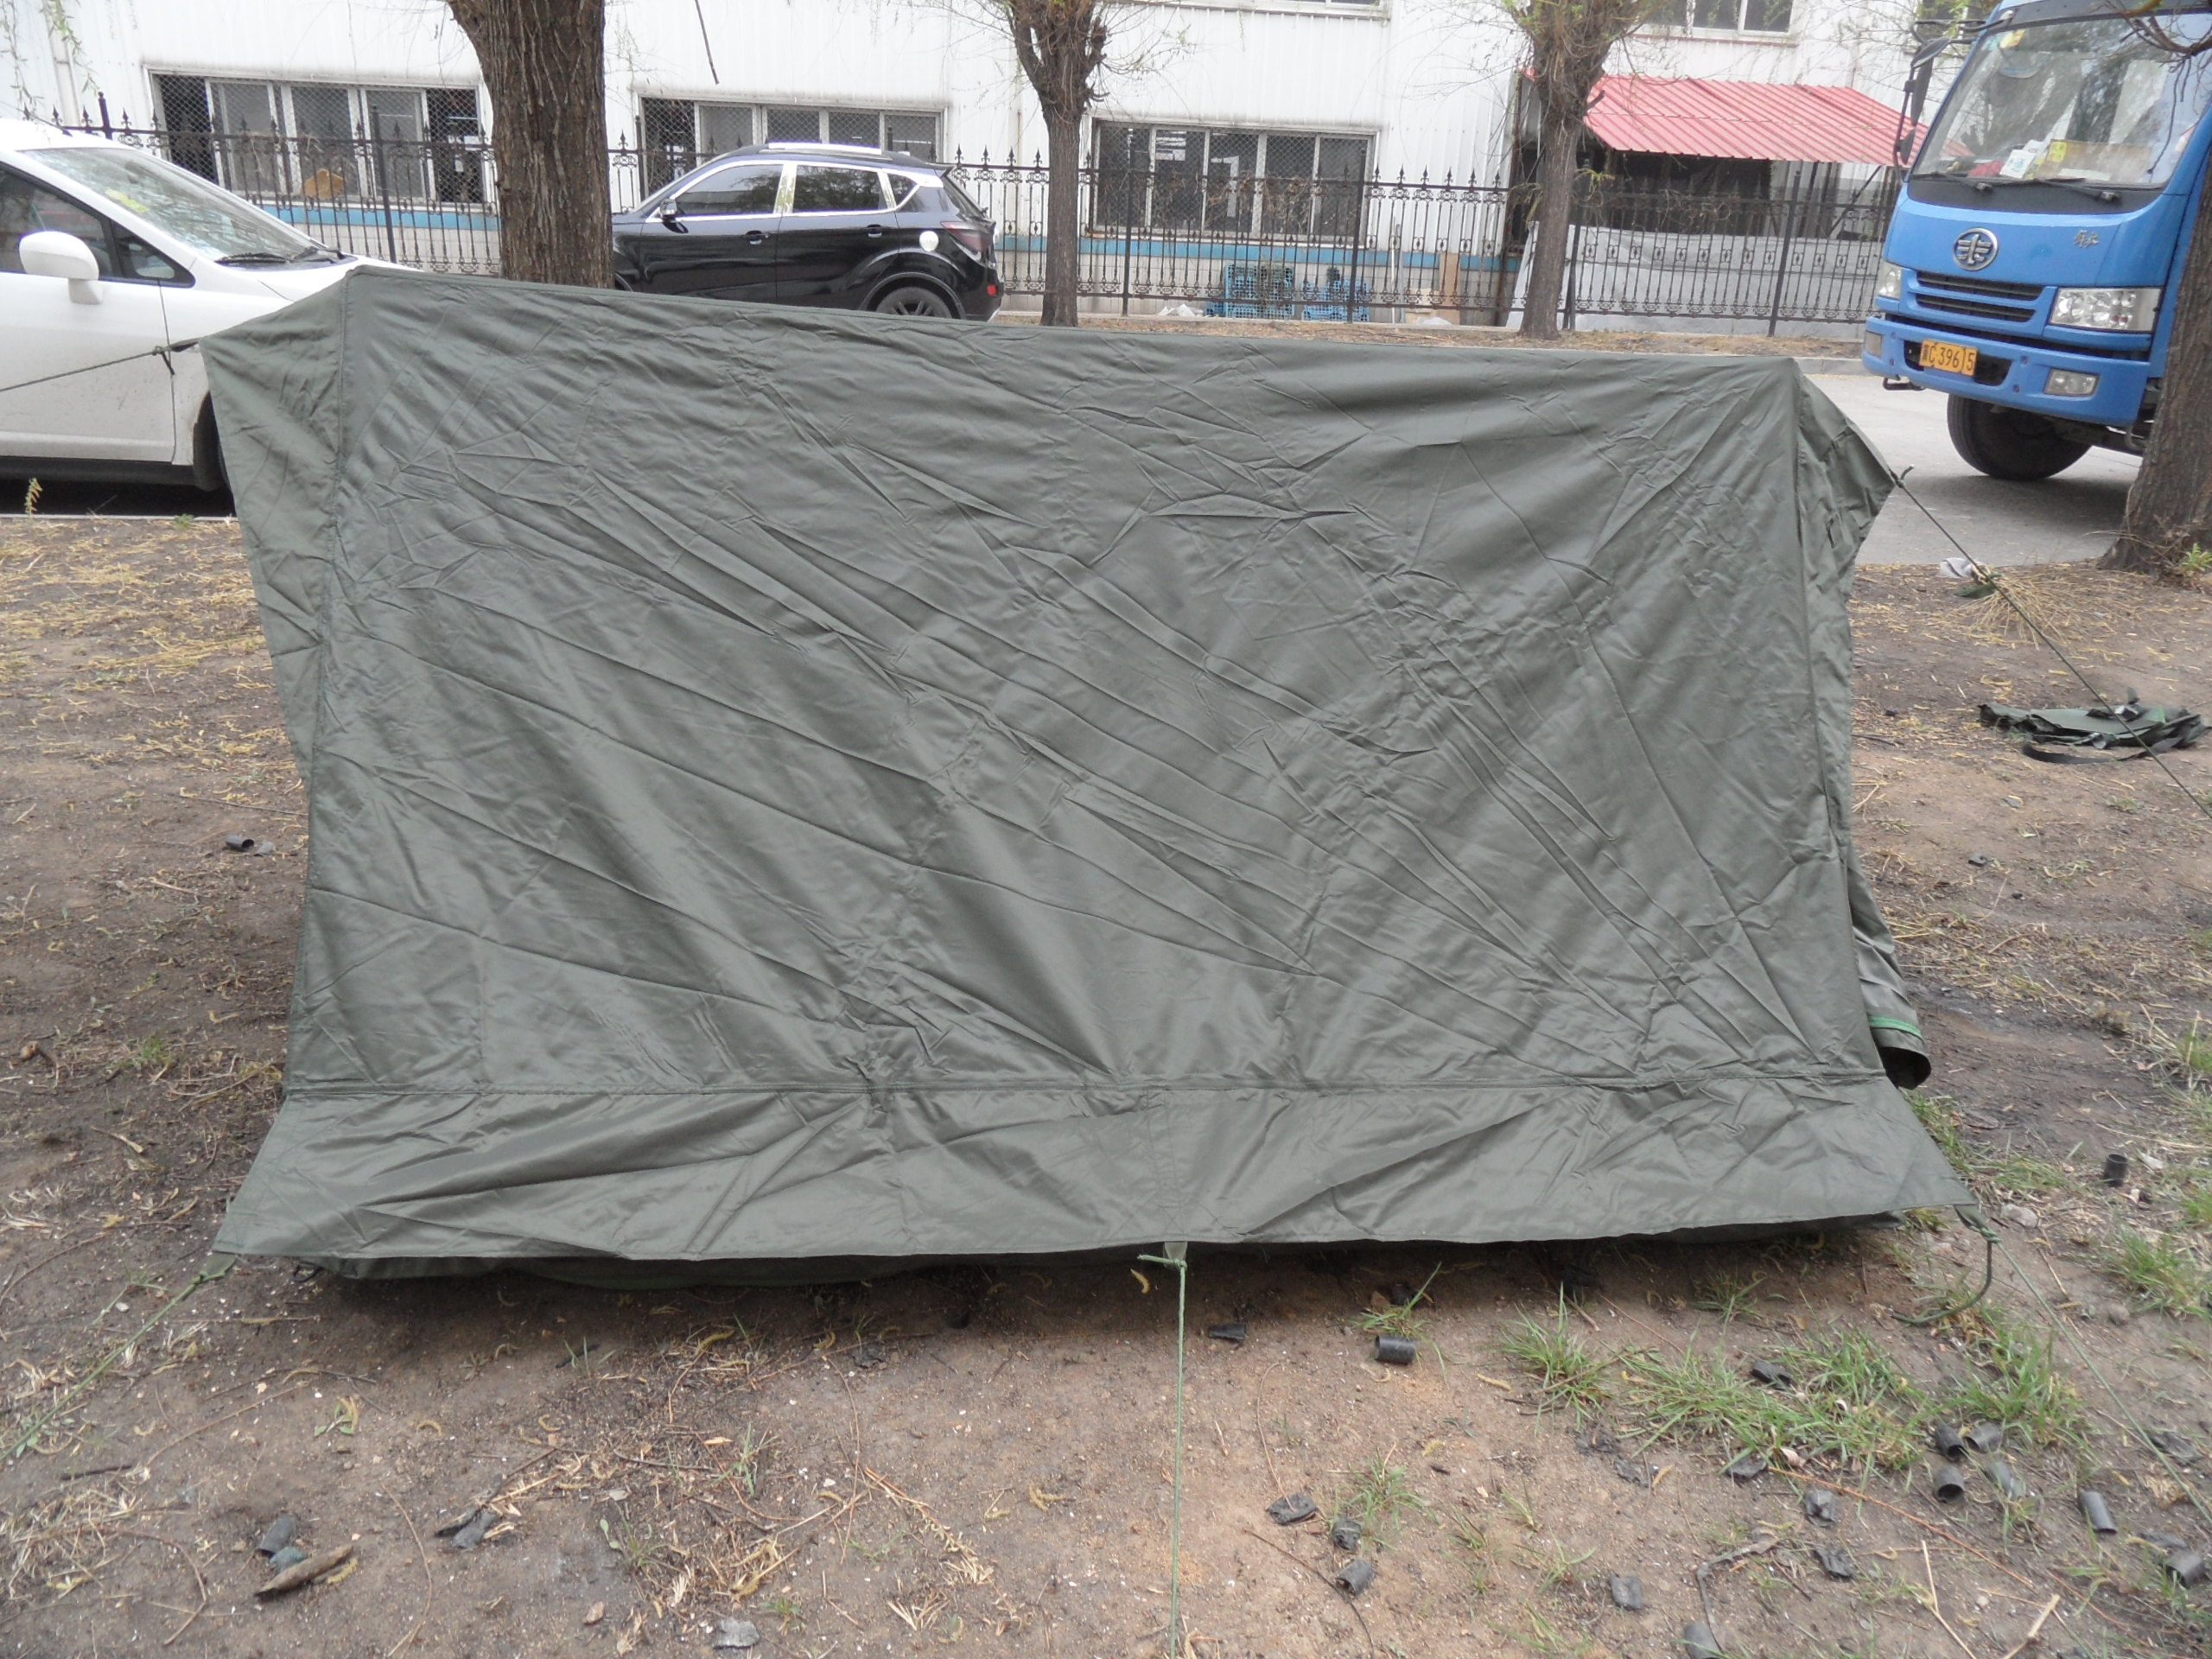 Uganda Army Olive Green Military Camping Tent